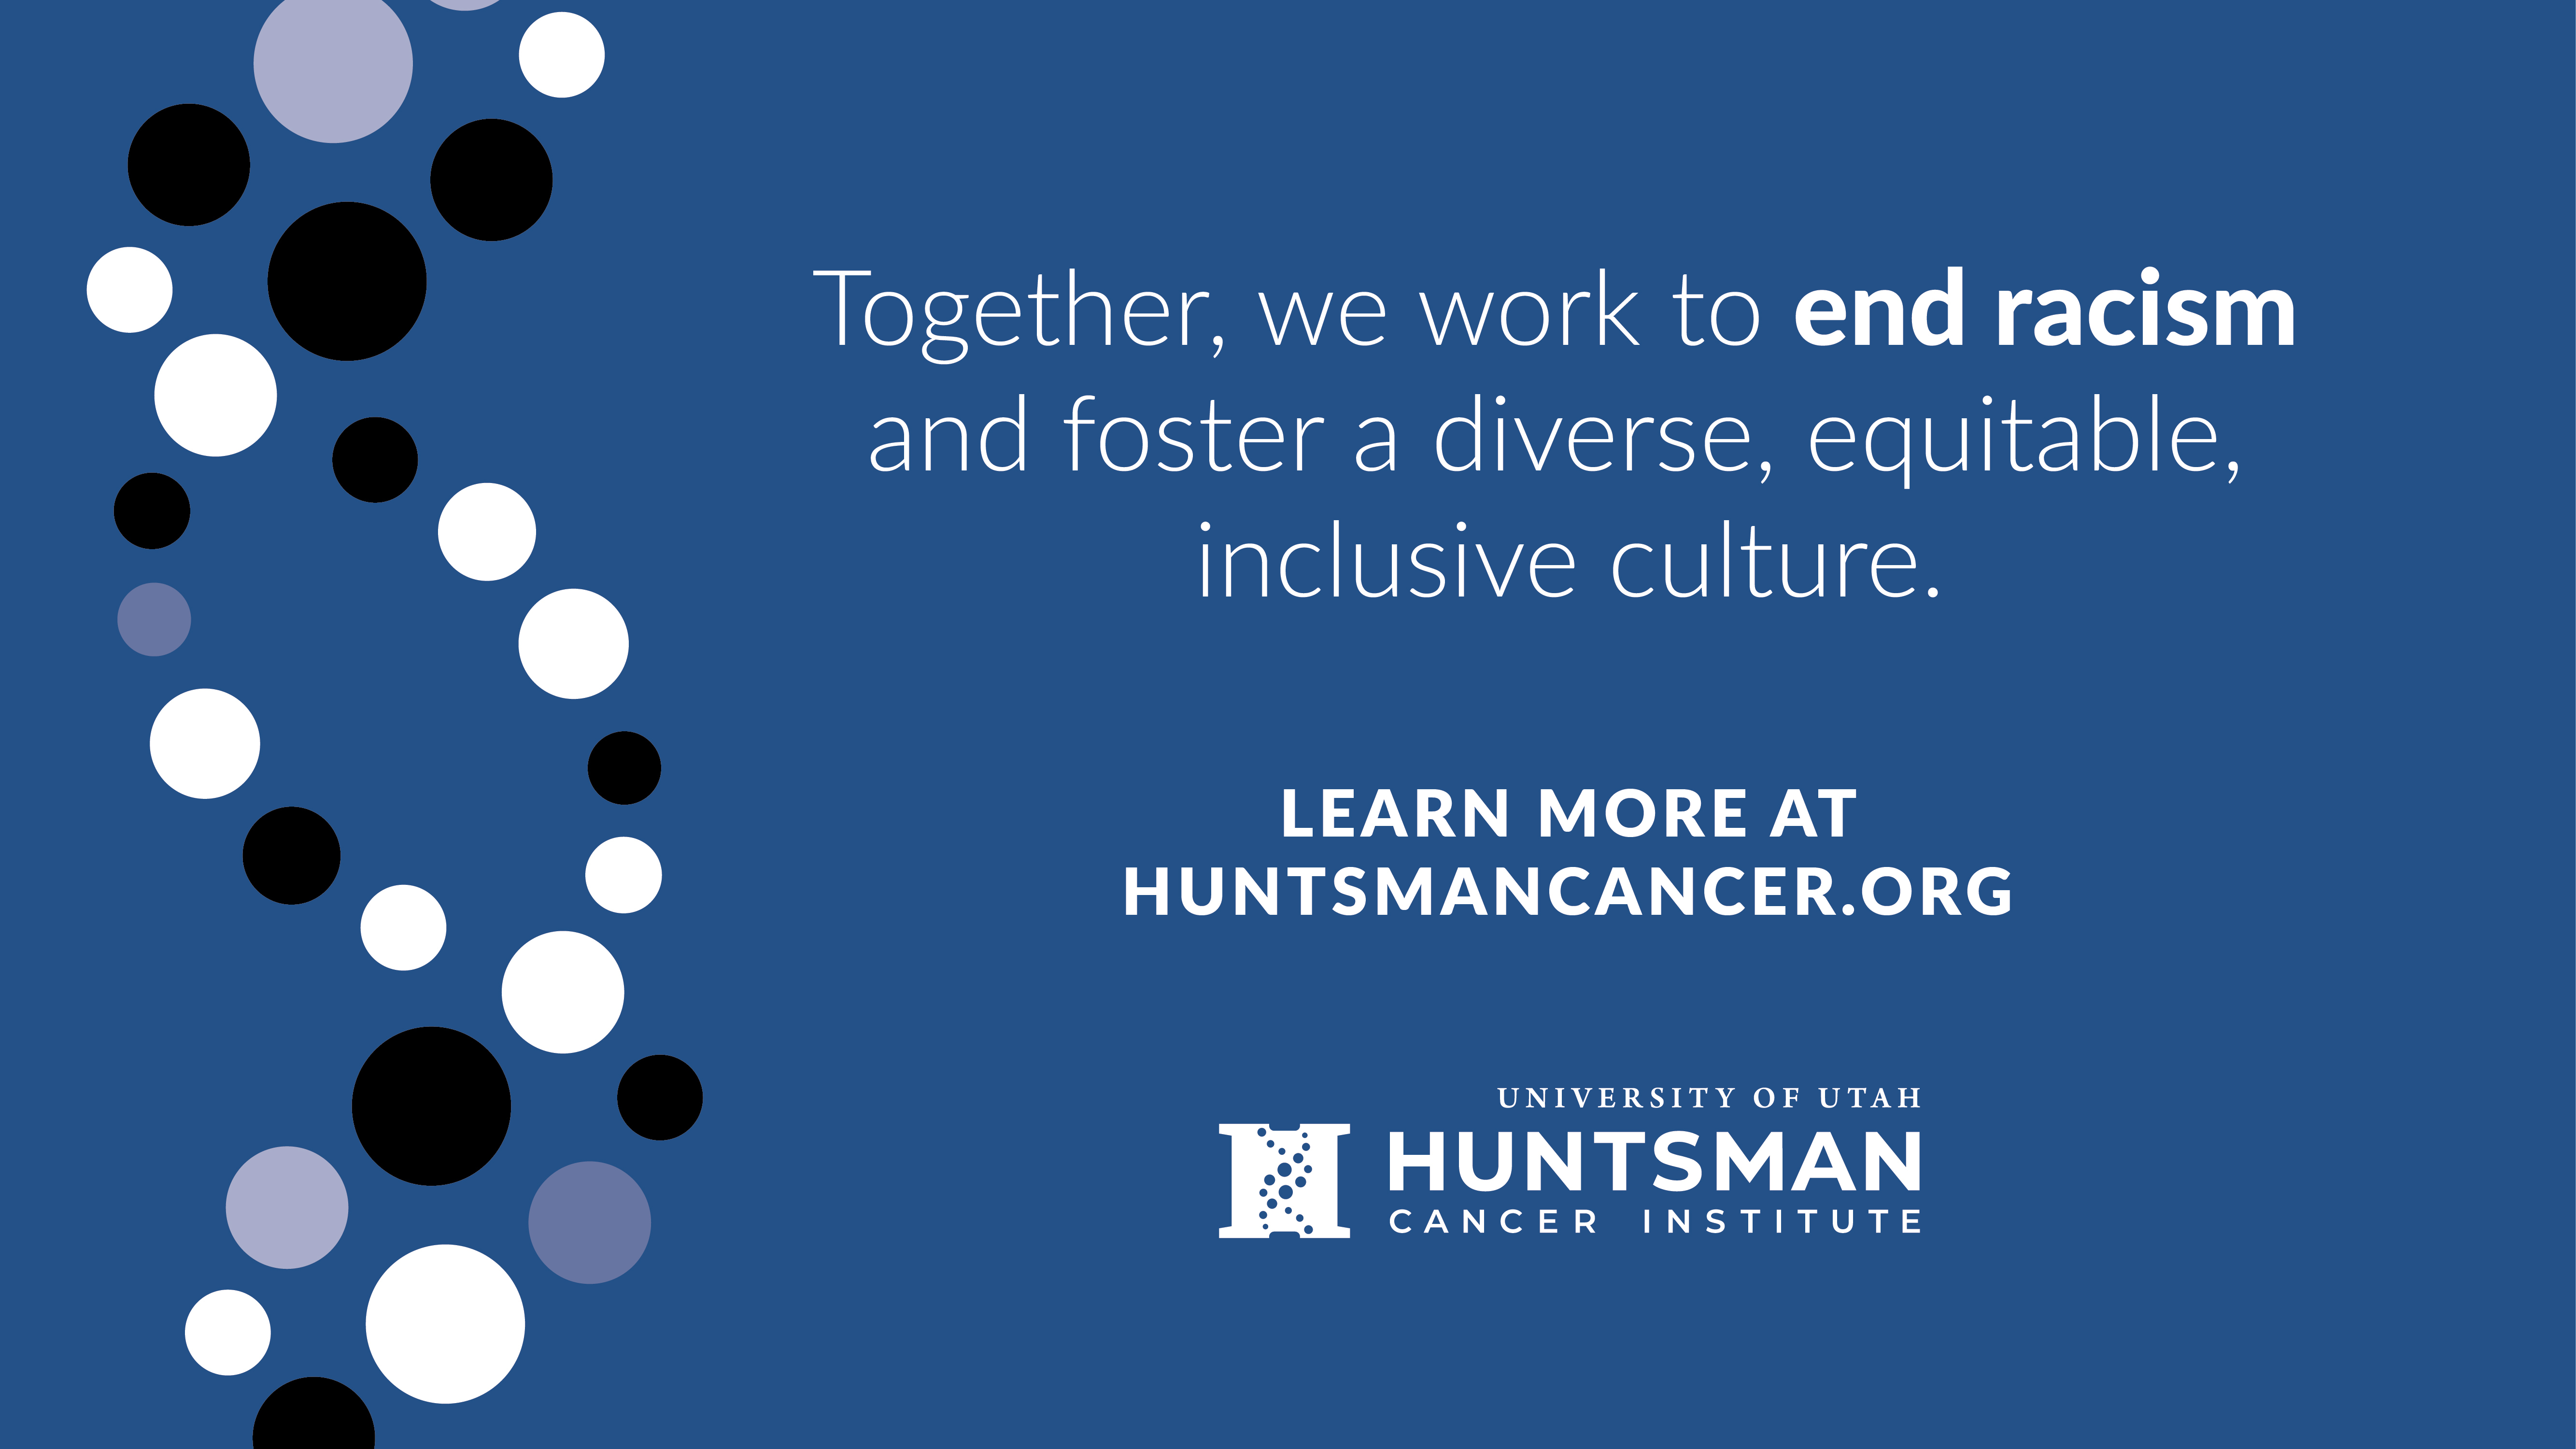 Our Commitment to End Racism at Huntsman Cancer Institute